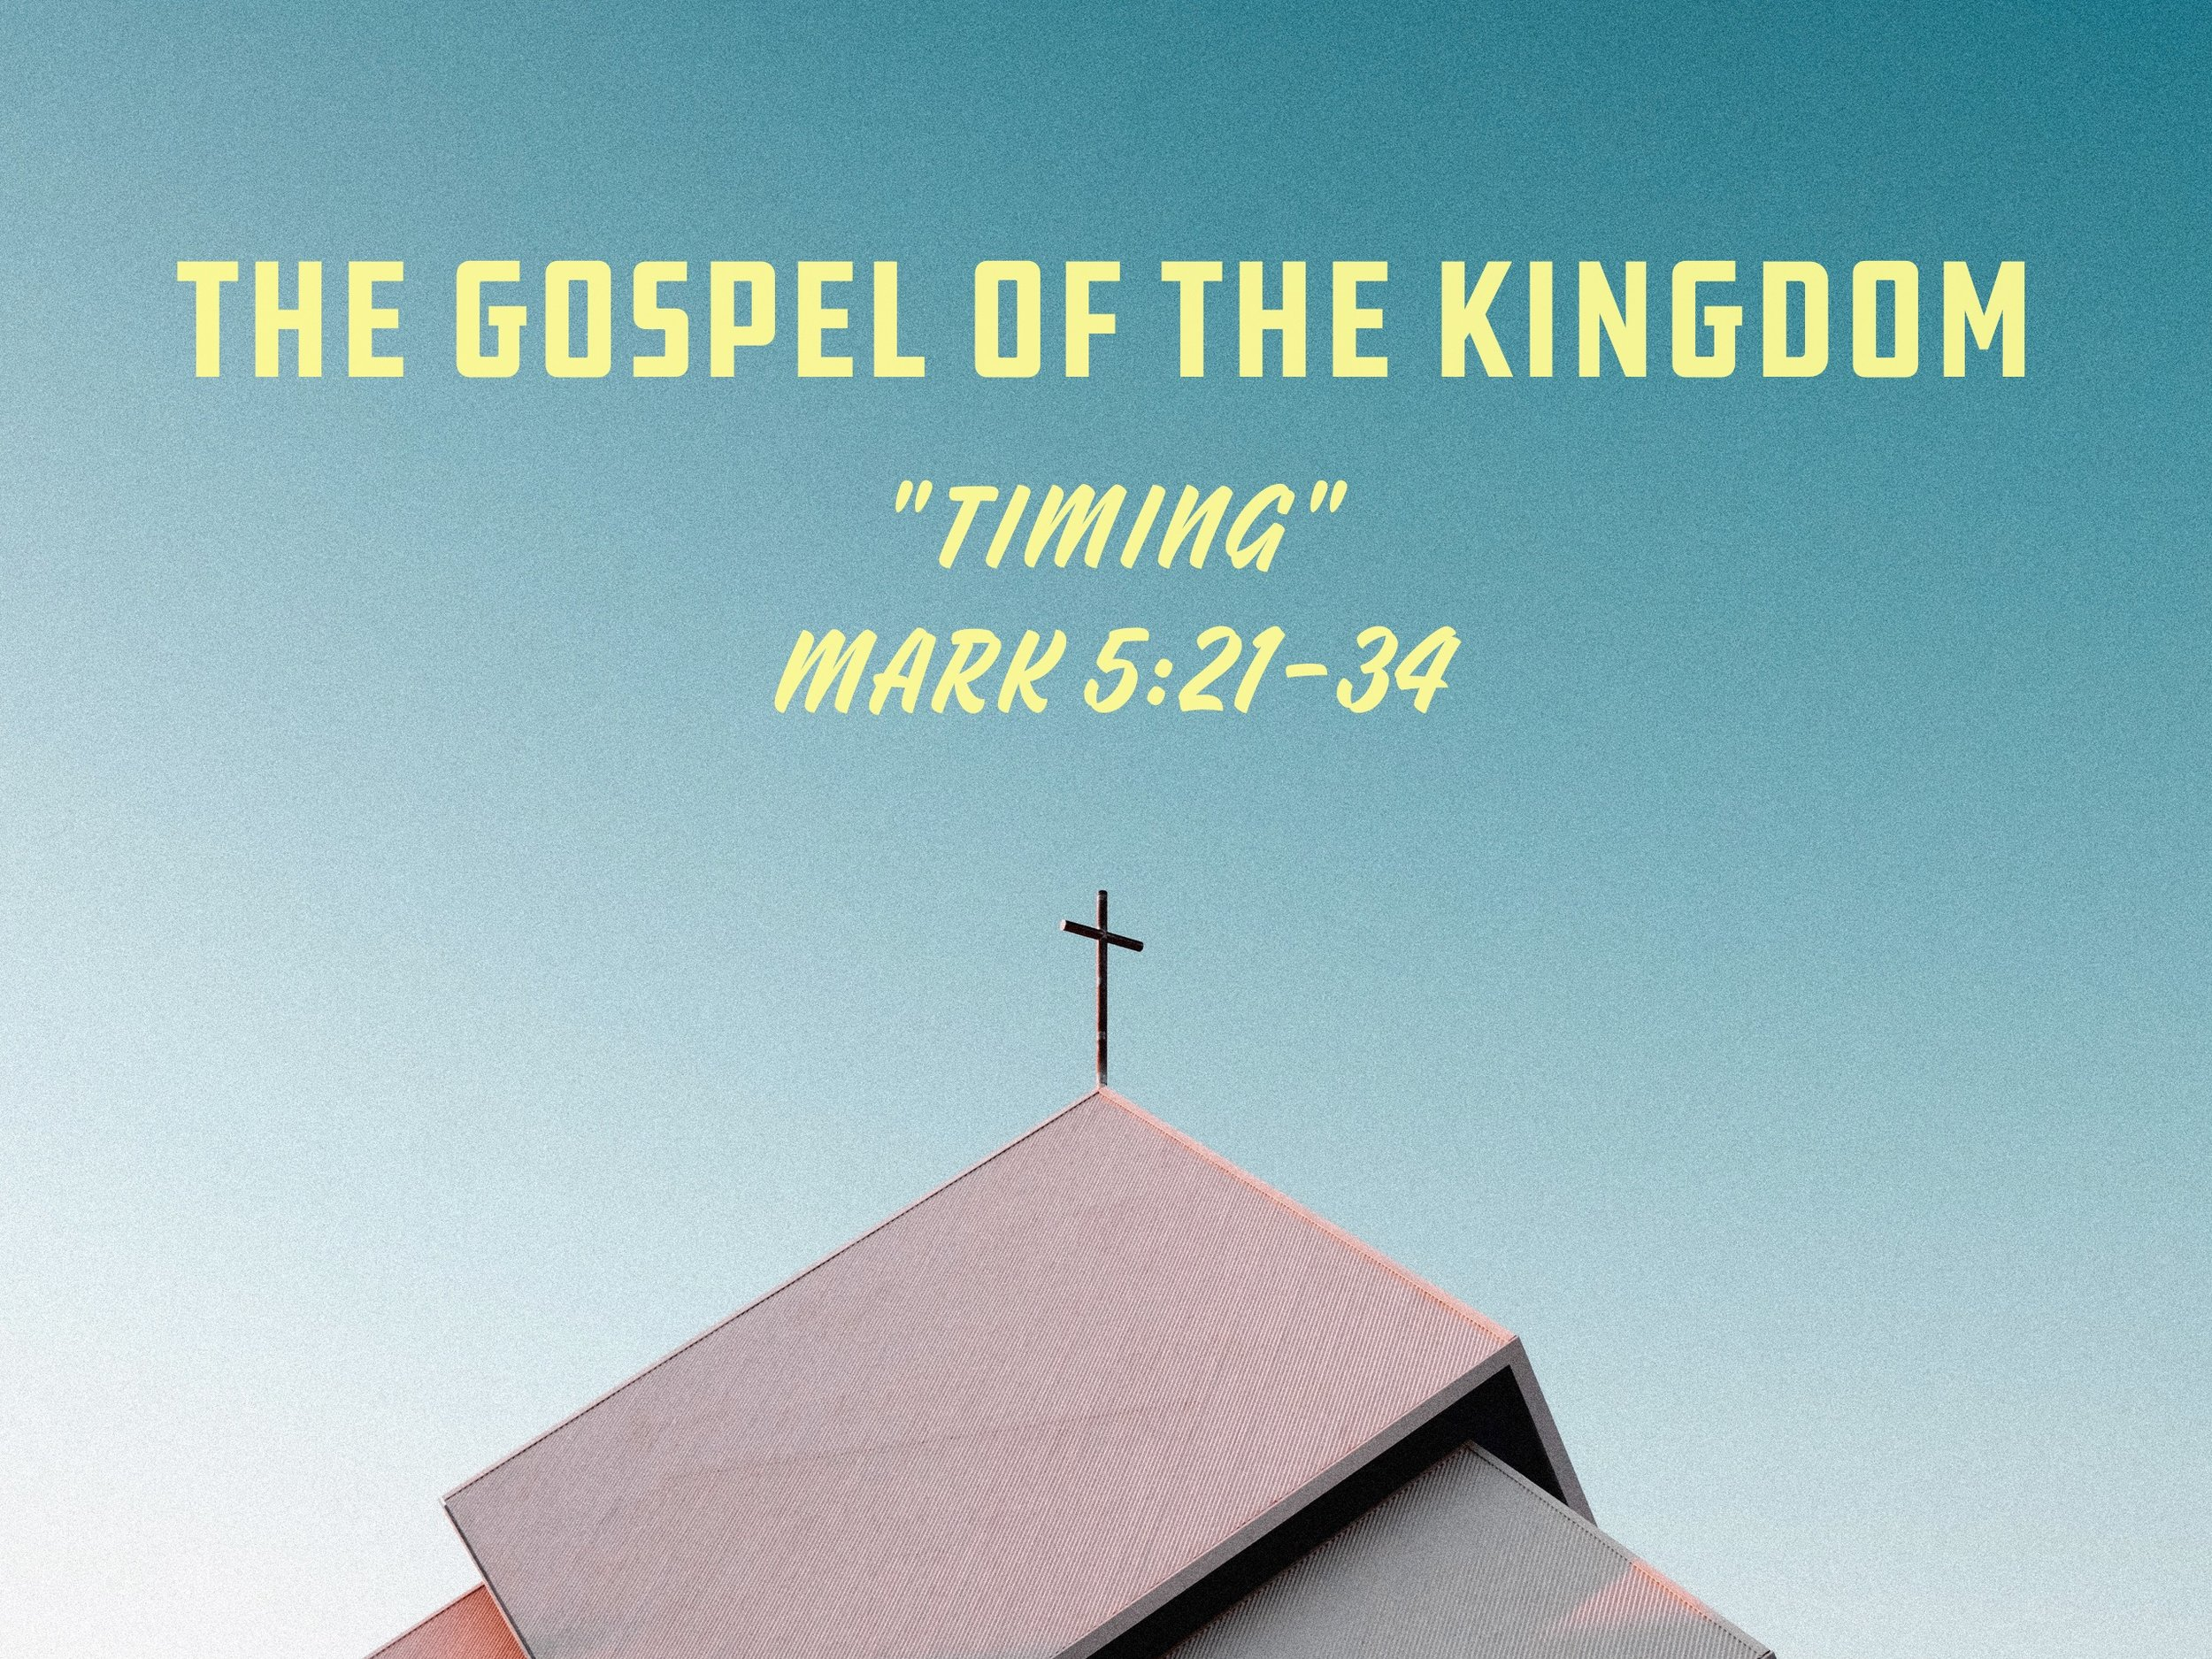 2018.01.14 The Gospel of the Kingdom Sermon Slide.jpg